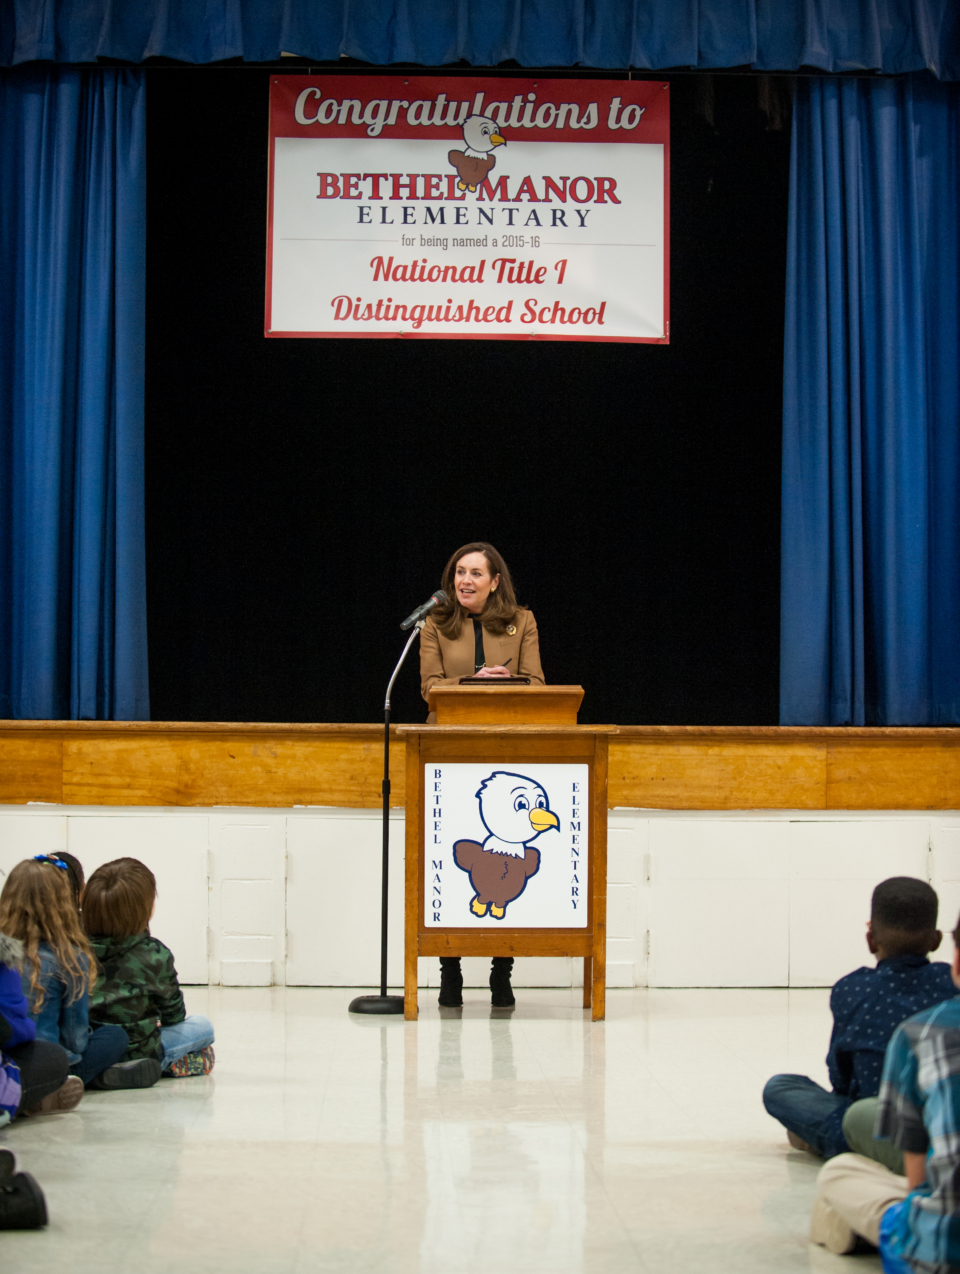 The First Lady of Virginia, Dorothy McAuliffe, spoke to the students and faculty at Bethel Manor to congratulate them on their National Title I award in fall 2015. The new logo was implemented just before receiving this national recognition.